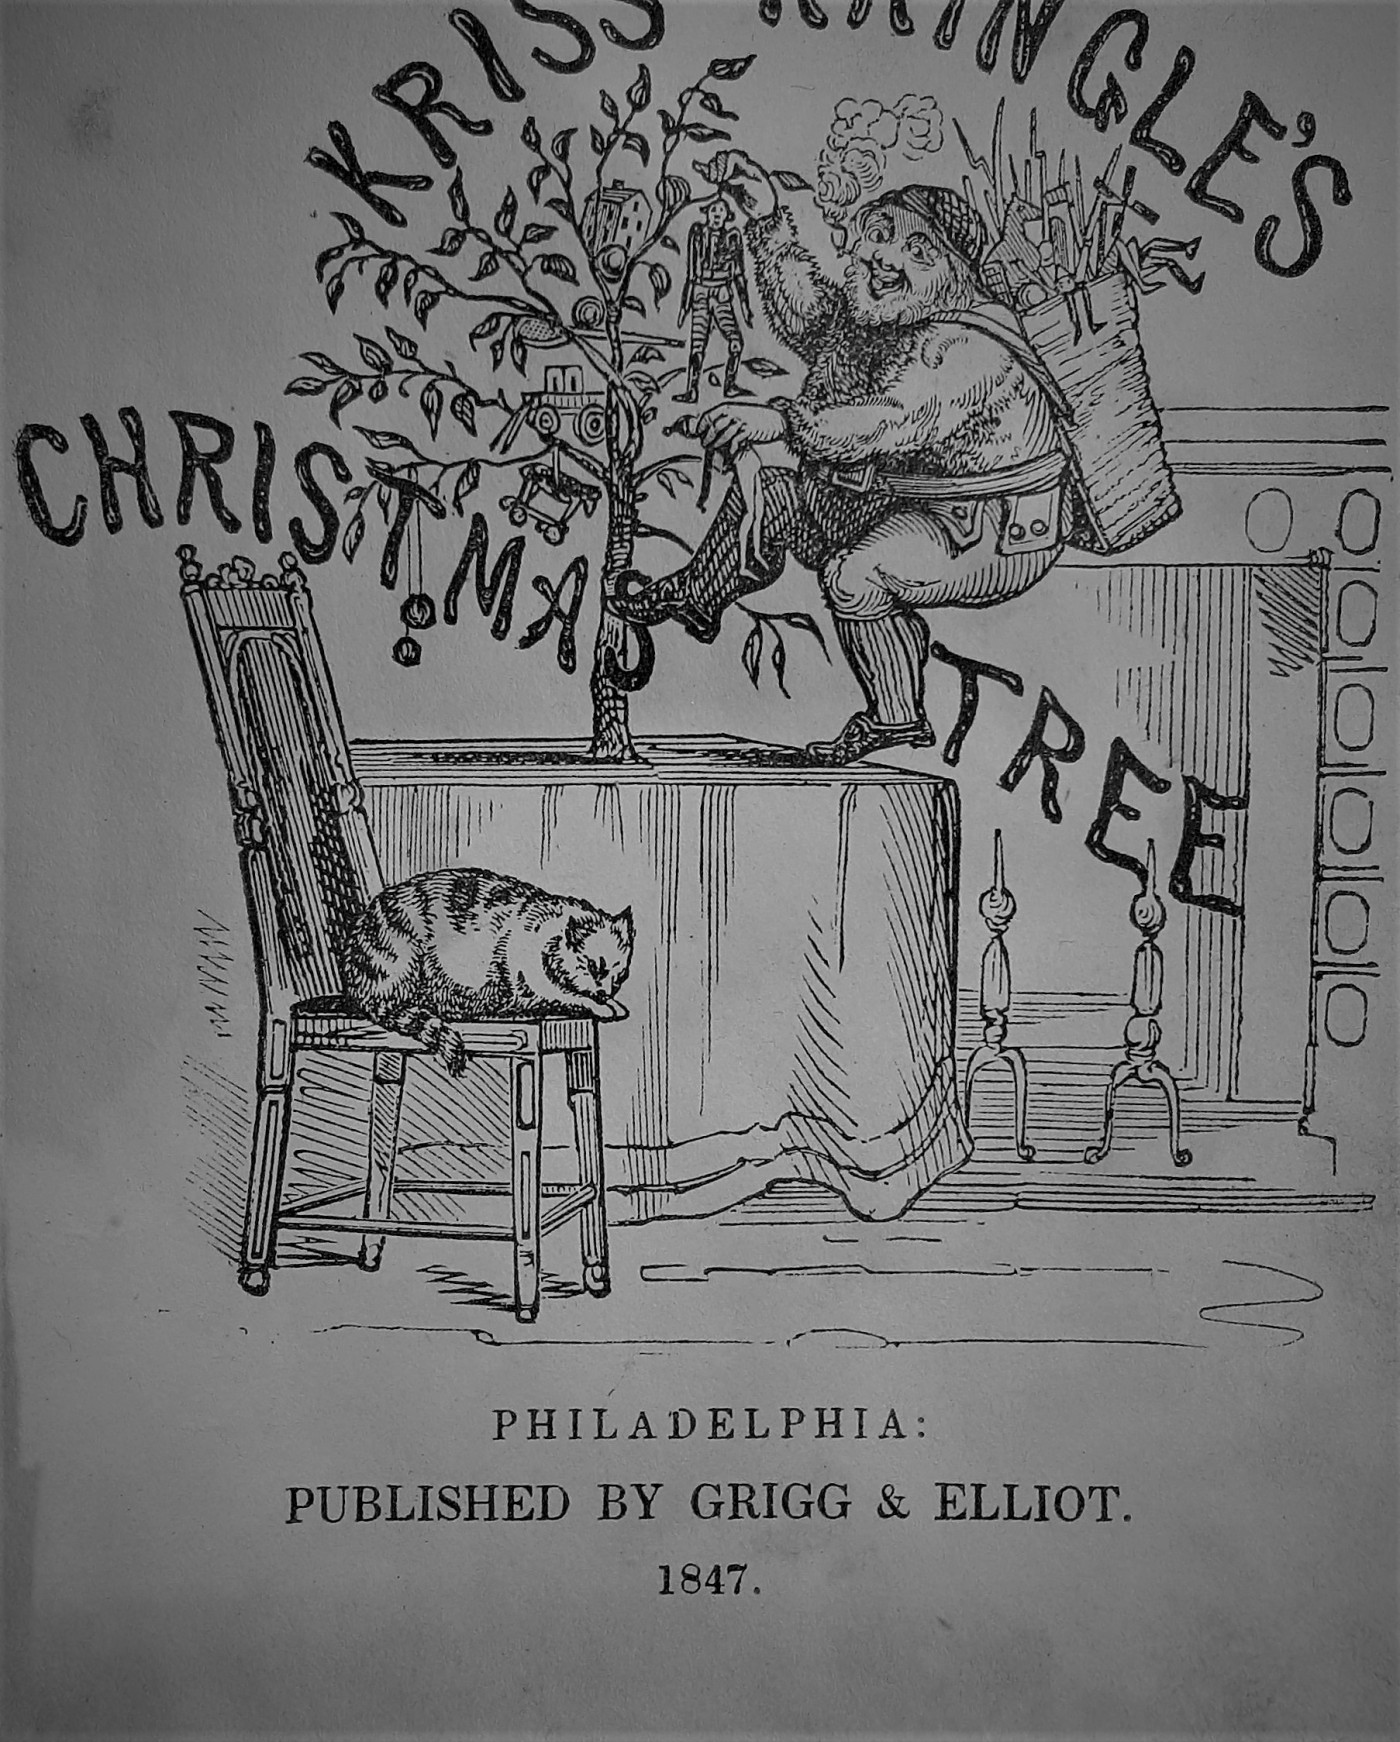 Kringles For Christmas.The Evolution Of Christmas Santa Claus In The Late 1840s